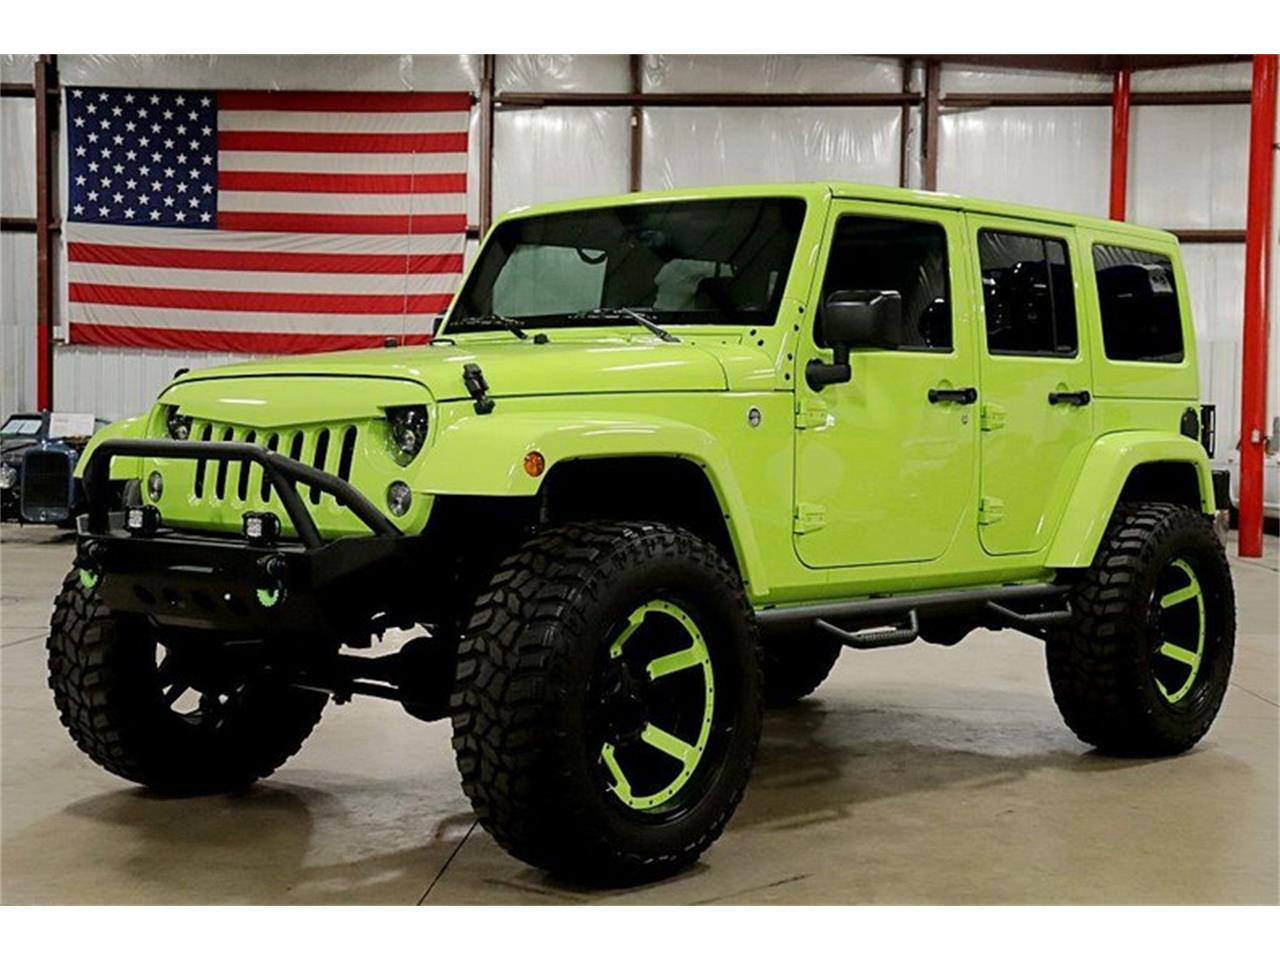 for sale 2016 jeep wrangler in kentwood, michigan cars - grand rapids, mi at geebo